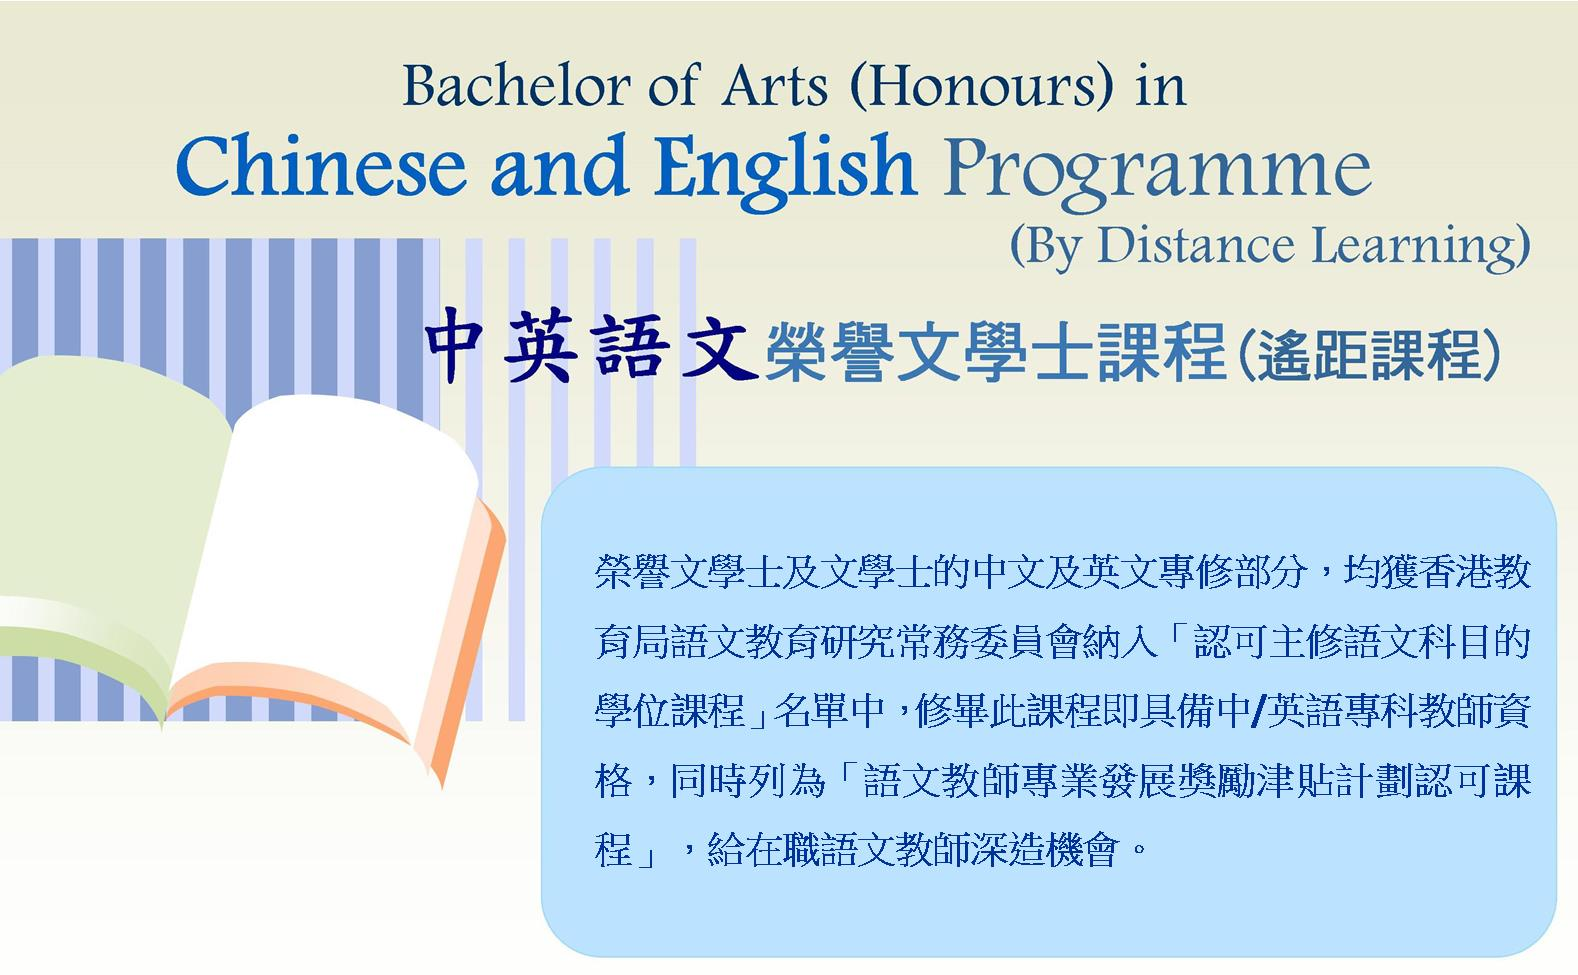 the open university of hong kong bachelor of arts and bachelor of the open university of hong kong bachelor of arts and bachelor of arts honours in chinese and english